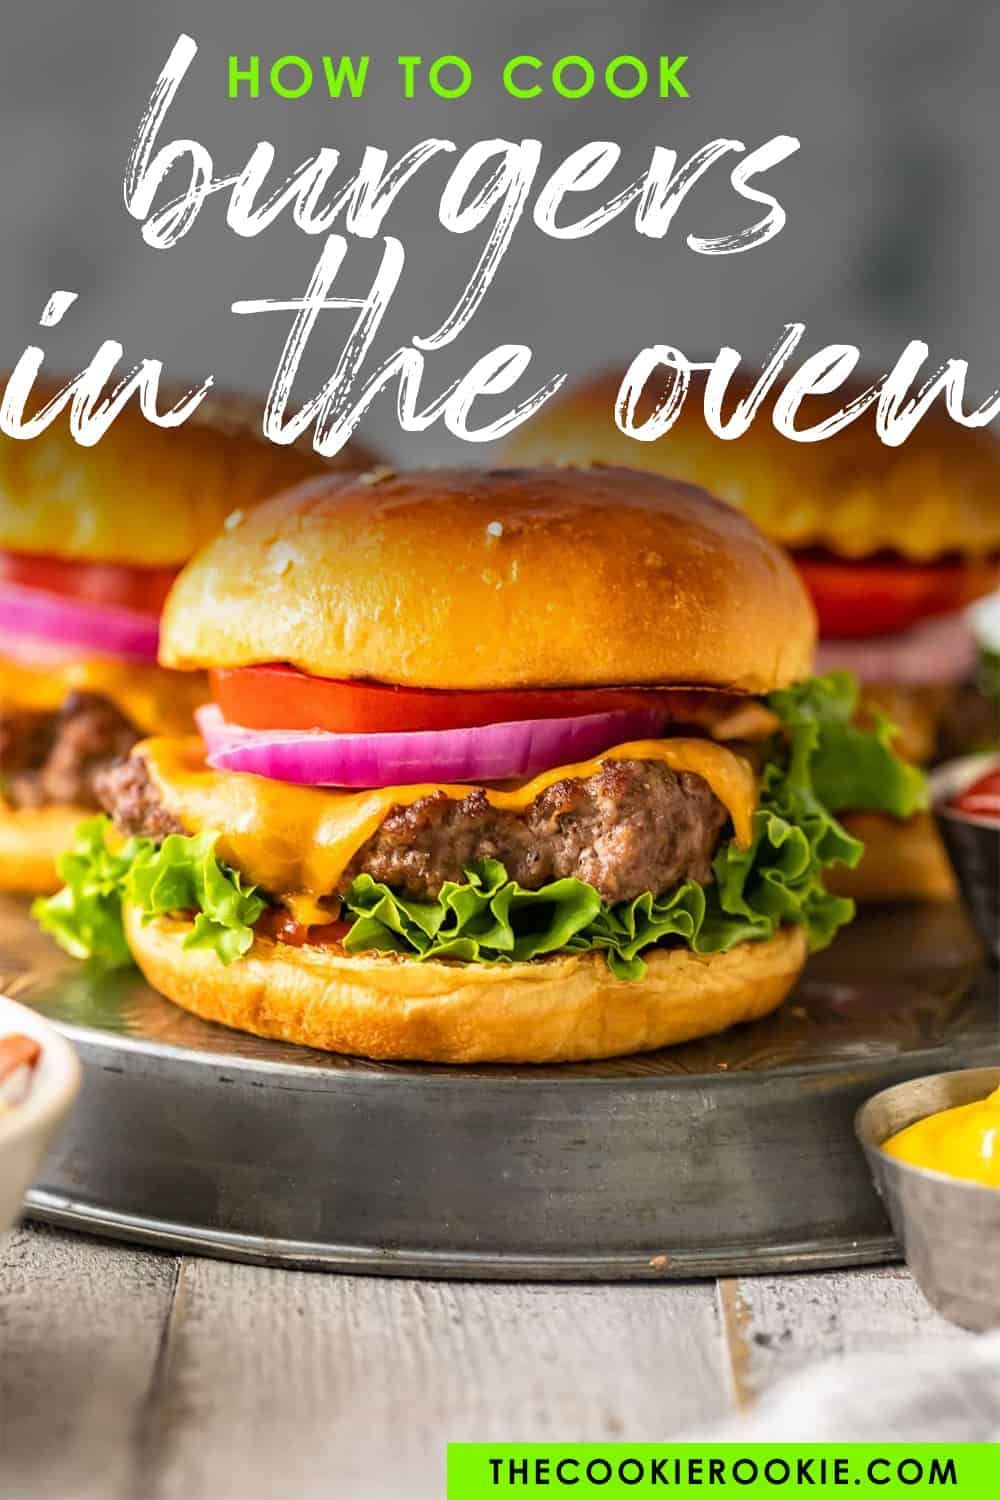 How to cook burgers in the oven learn to broil hamburgers